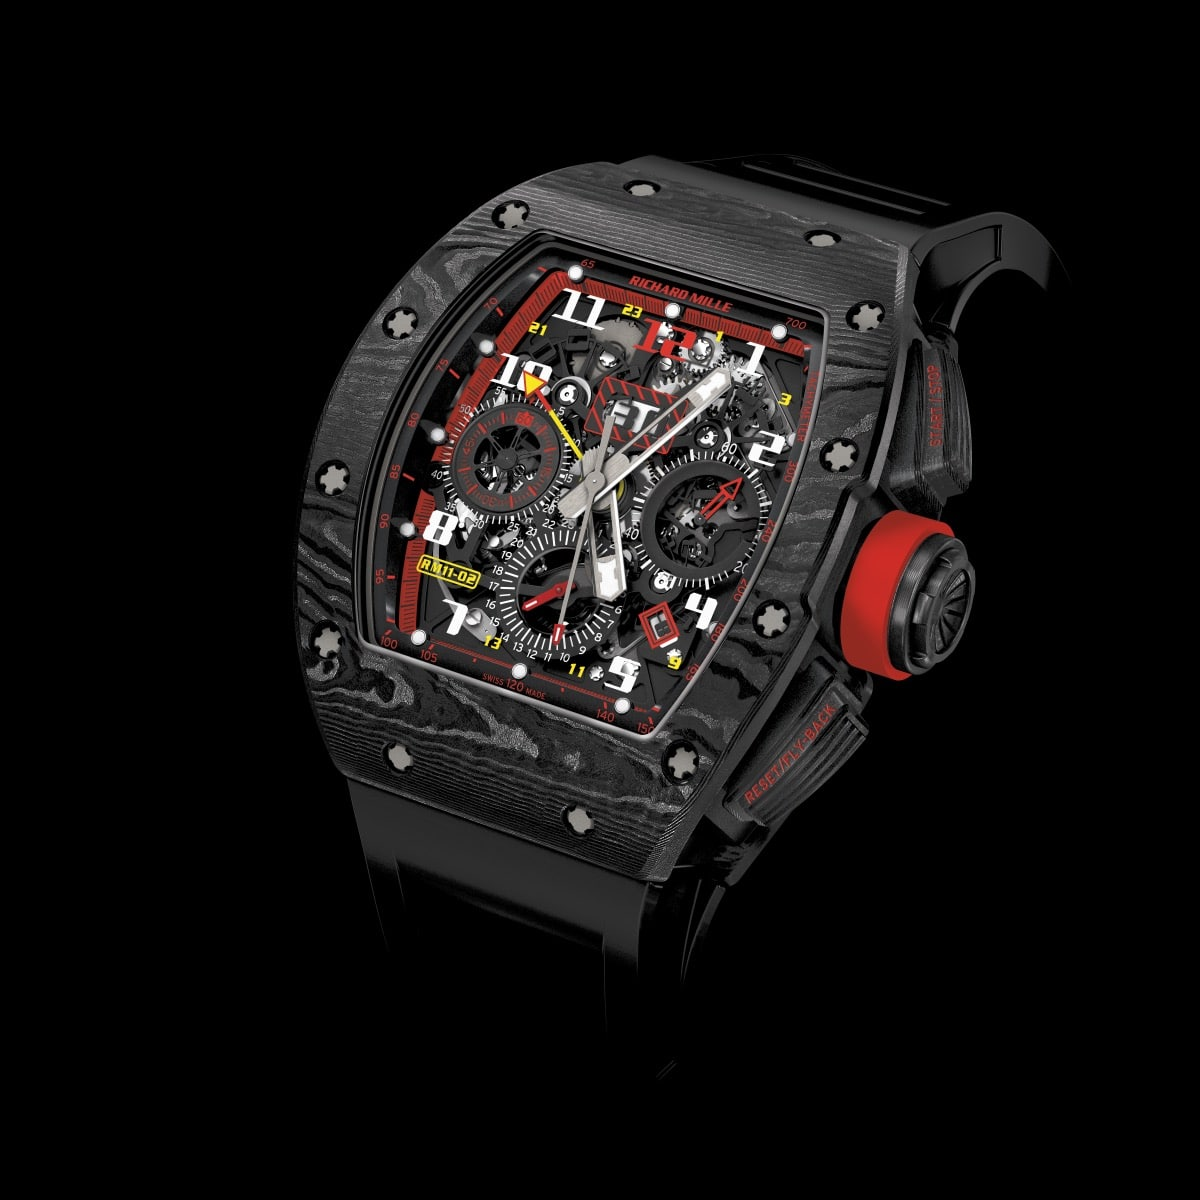 Richard Mille RM 11-02 NTPT Asia Ltd edition